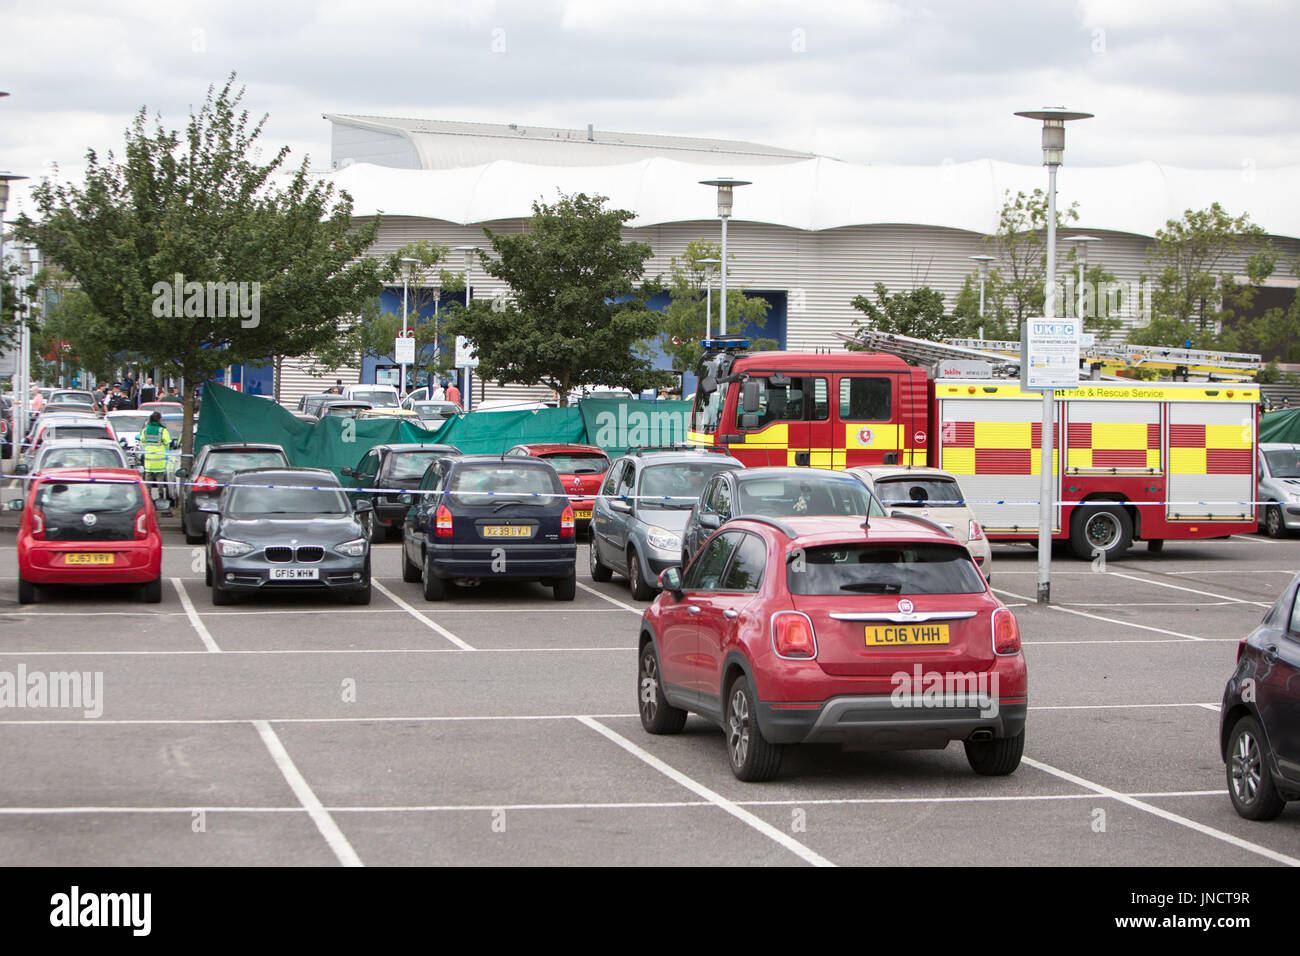 A man has been arrested after allegedly slitting a woman's throat in a busy shopping centre car park this morning (29June17) at Dockside outlet centre in Chatham, Kent  Featuring: Atmosphere Where: Chatham, Kent, United Kingdom When: 29 Jun 2017 Credit: WENN.com - Stock Image